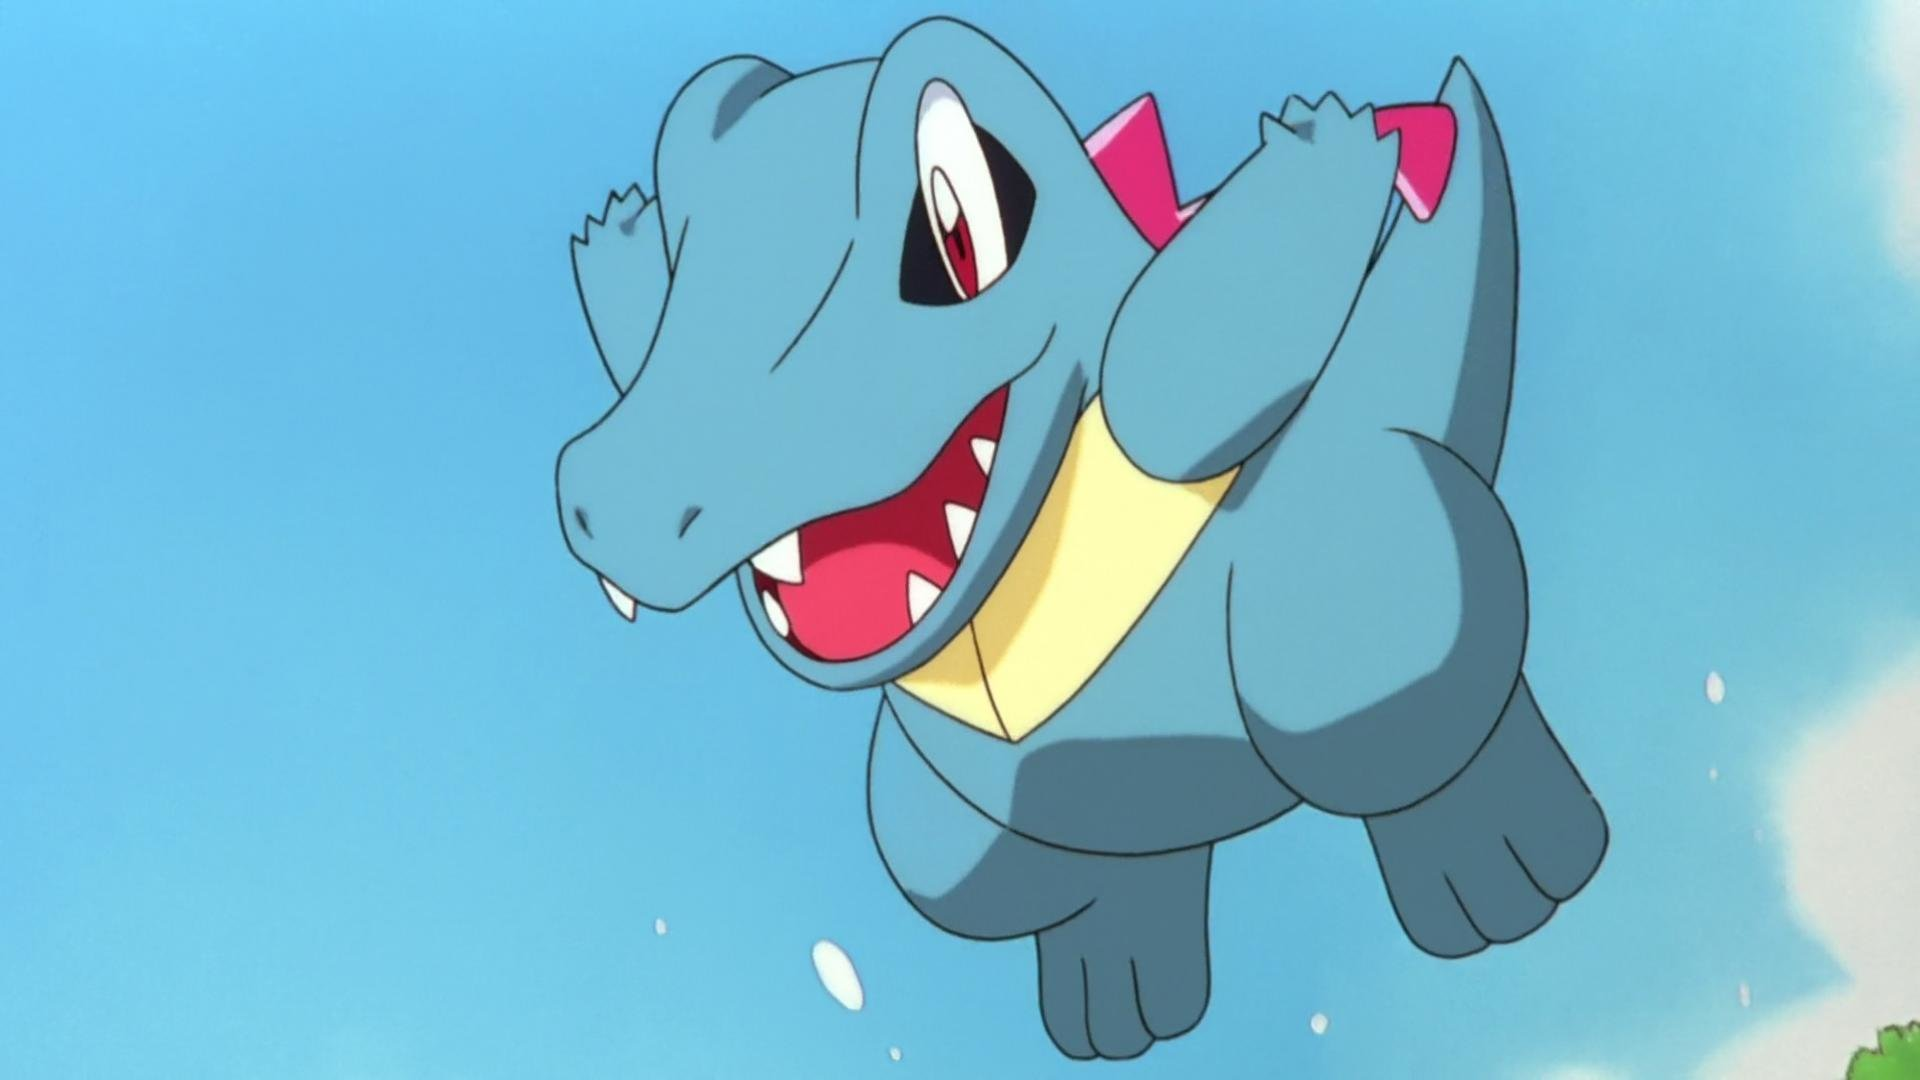 High resolution Totodile (Pokemon) hd 1920x1080 wallpaper ID:278862 for computer